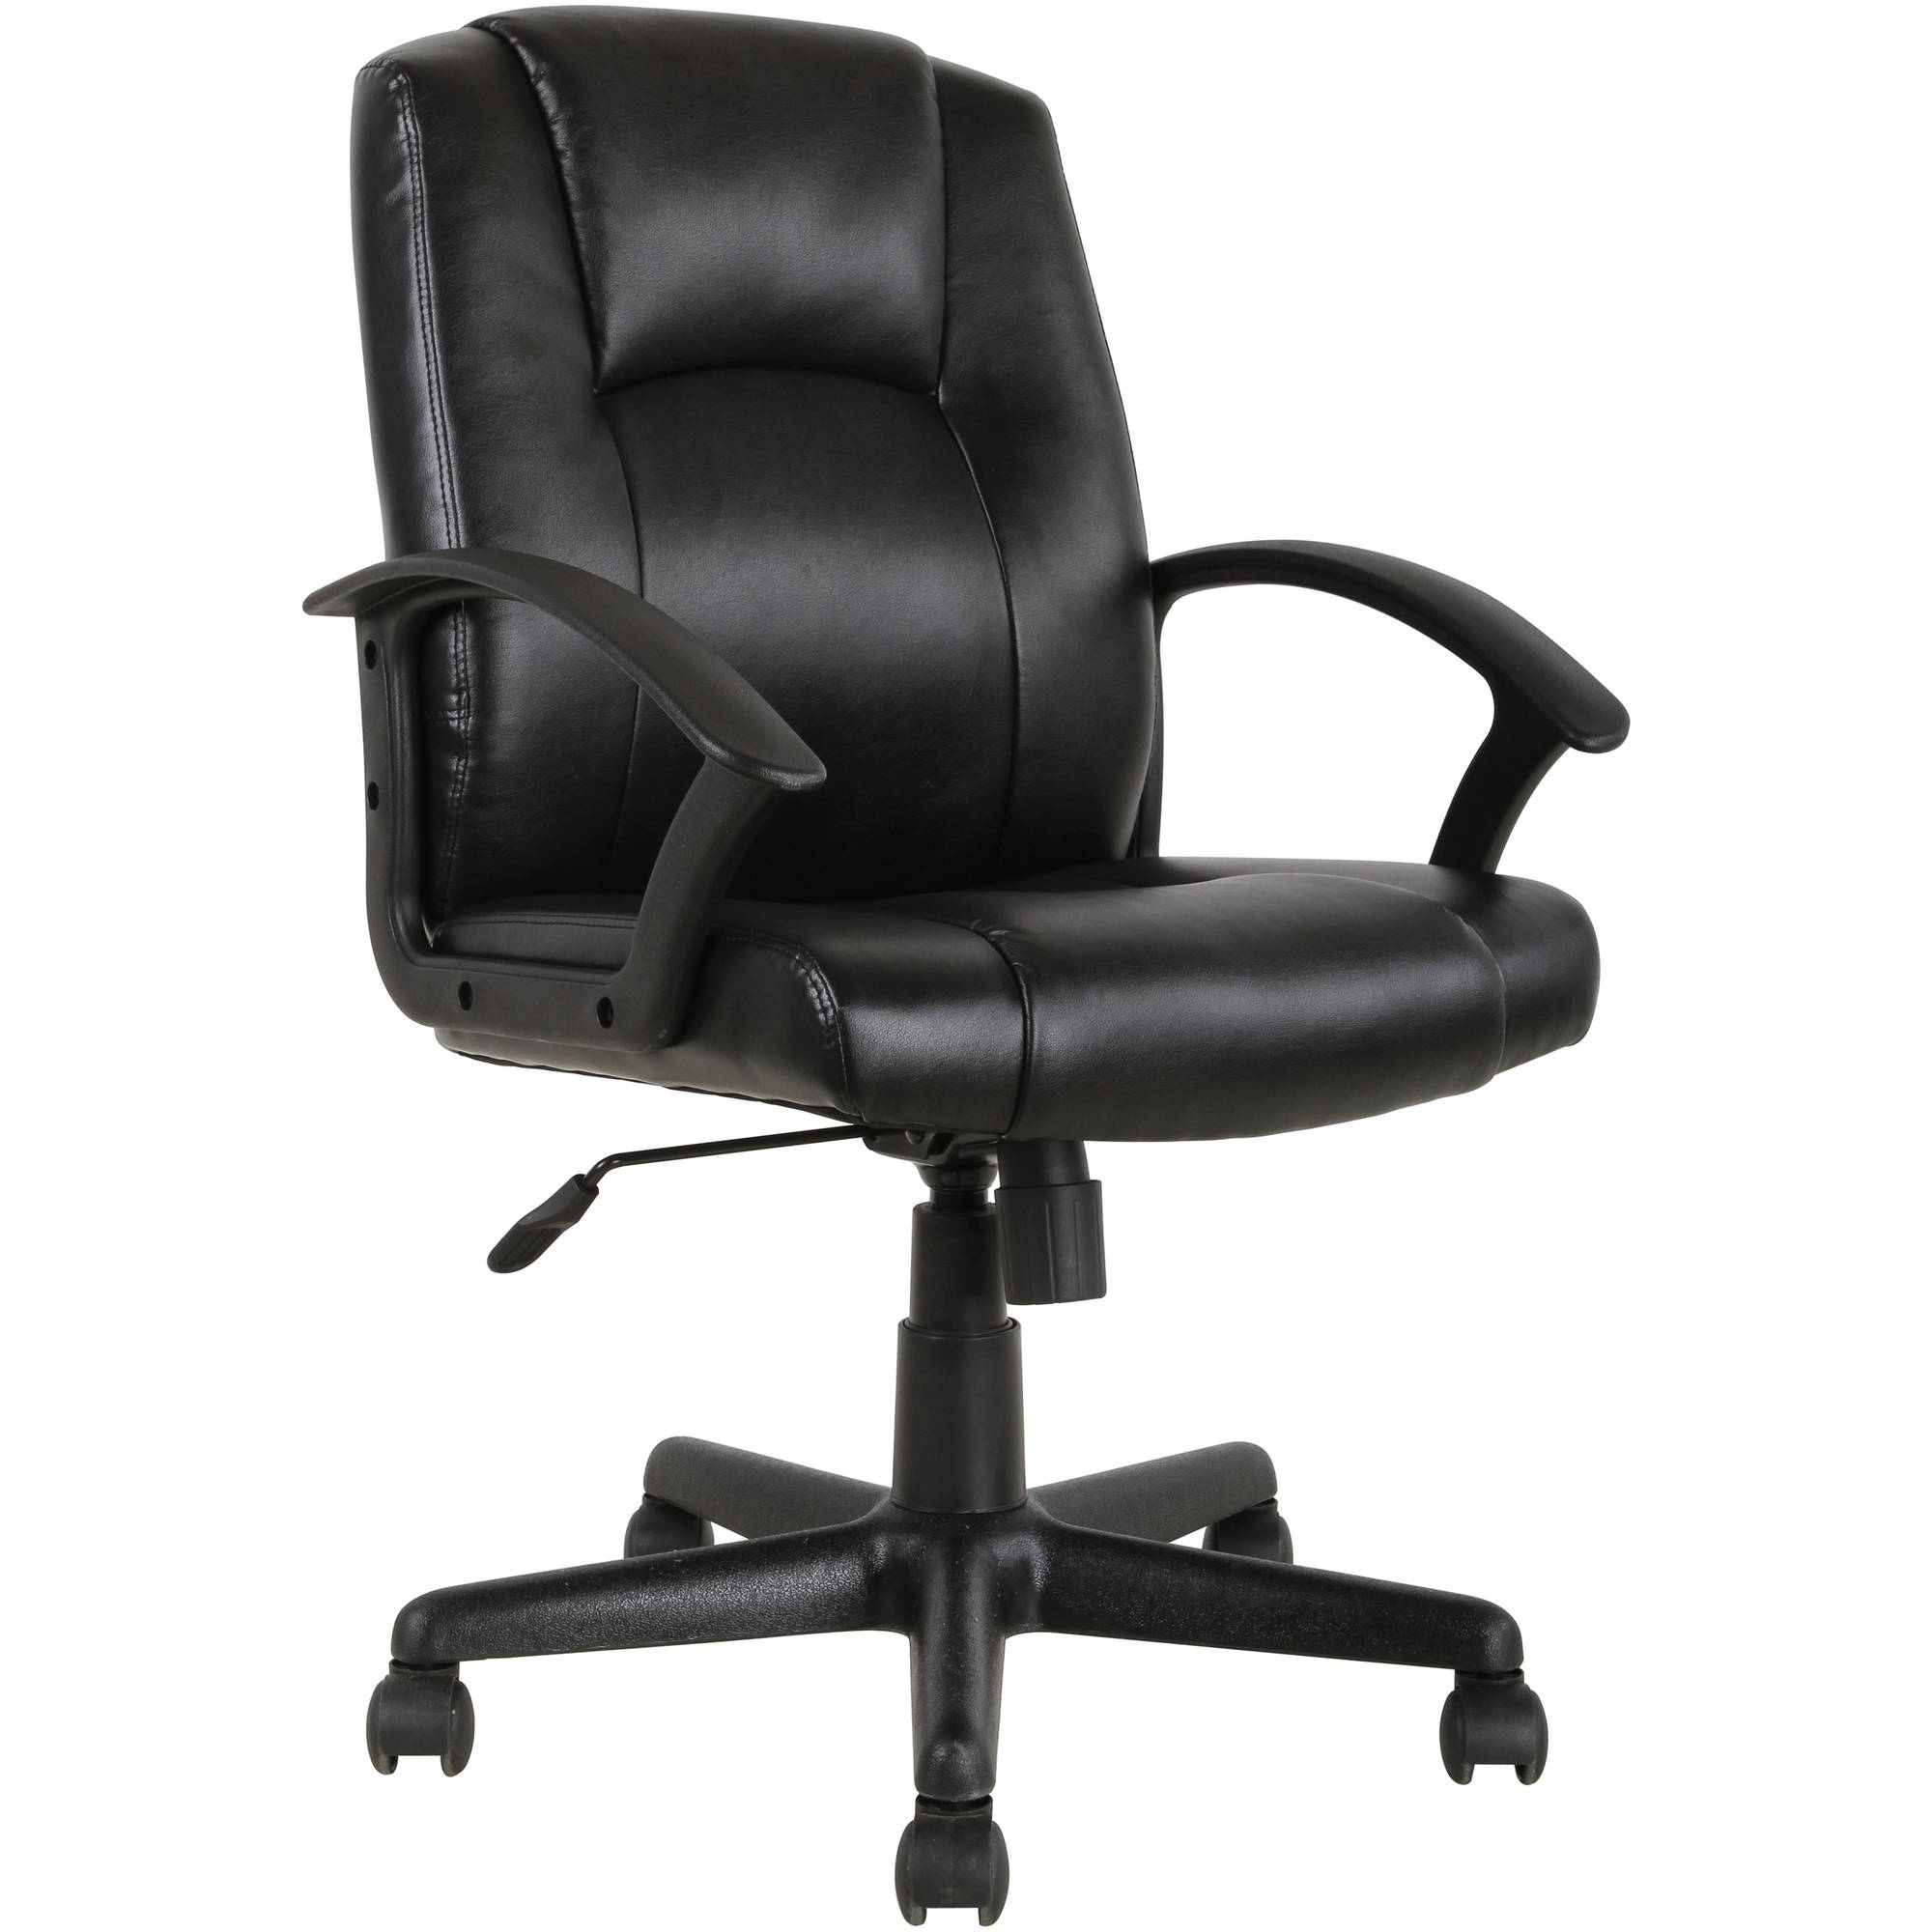 mid back office chair black Mainstays Mid-Back Leather Office Chair, Black - Walmart.com